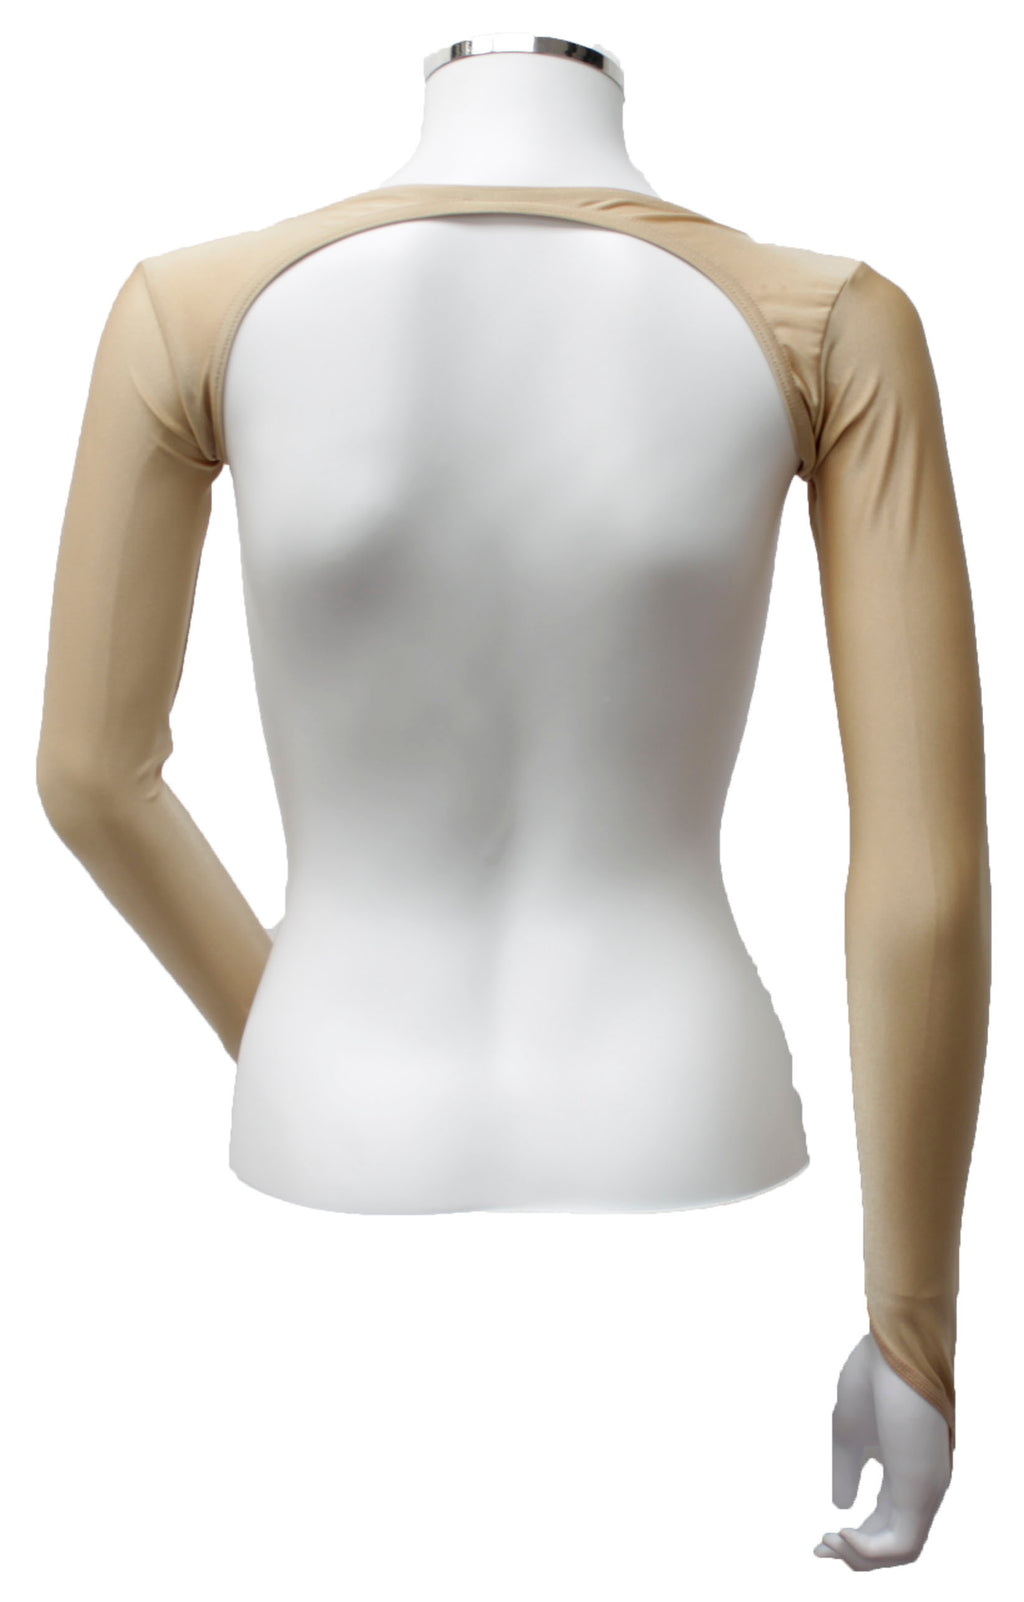 Backless Shrug - Flesh Opaque Lycra